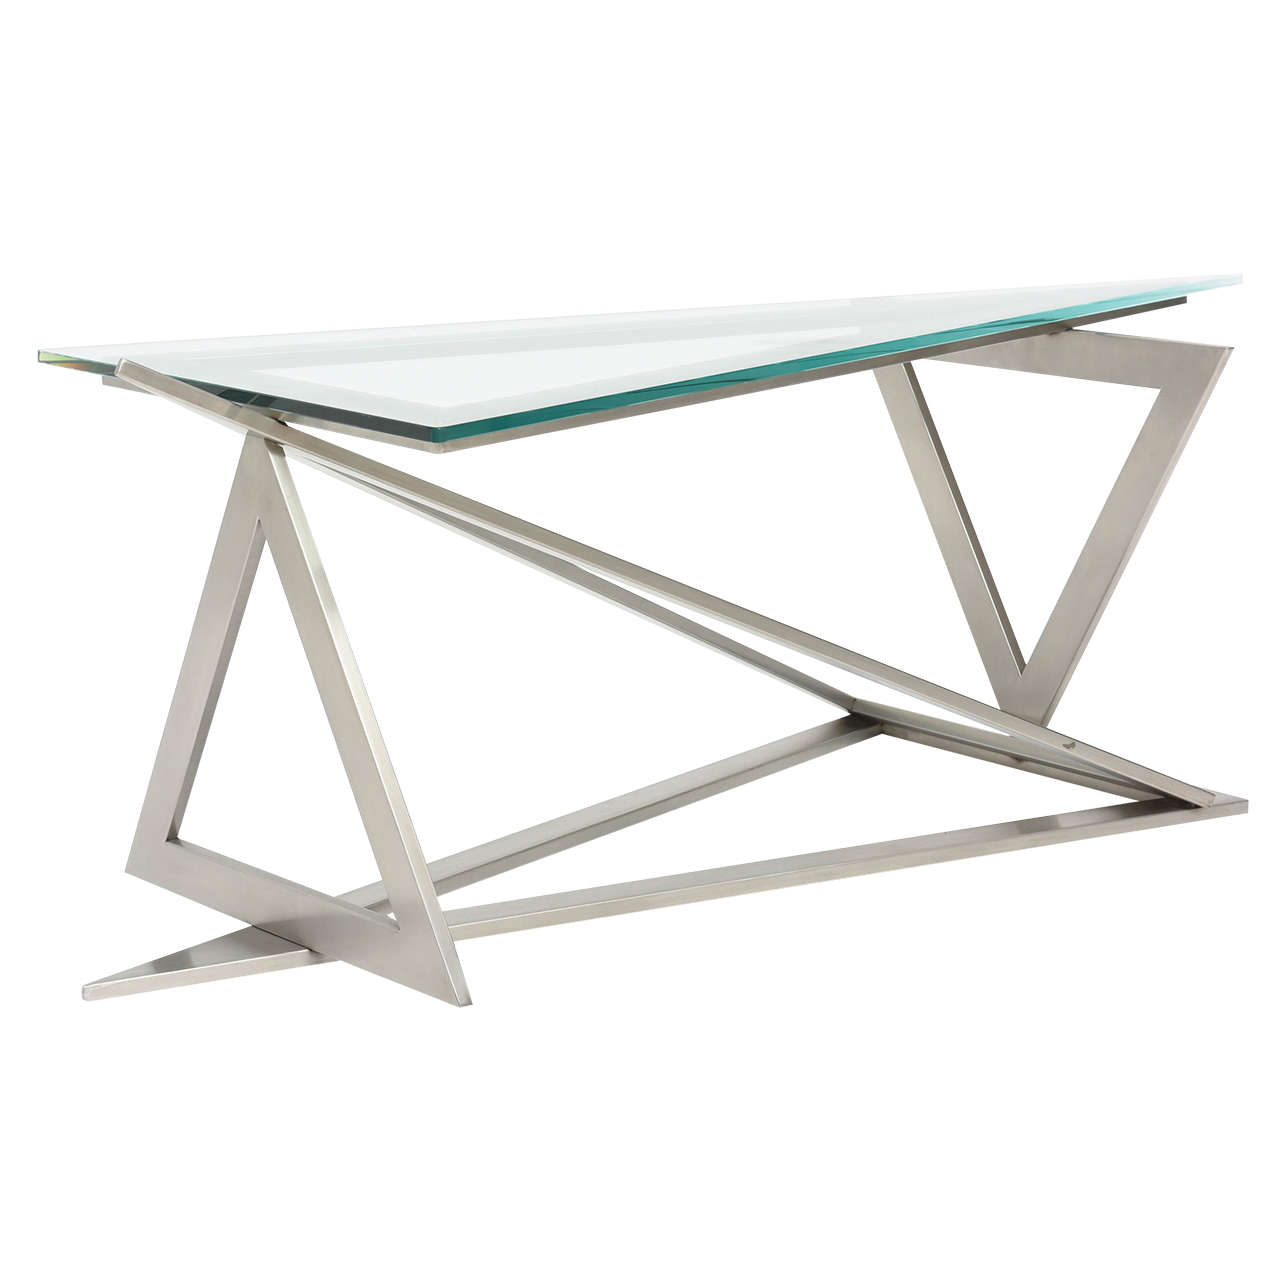 italian modern stainless steel and glass table attributed to giovanni offredi